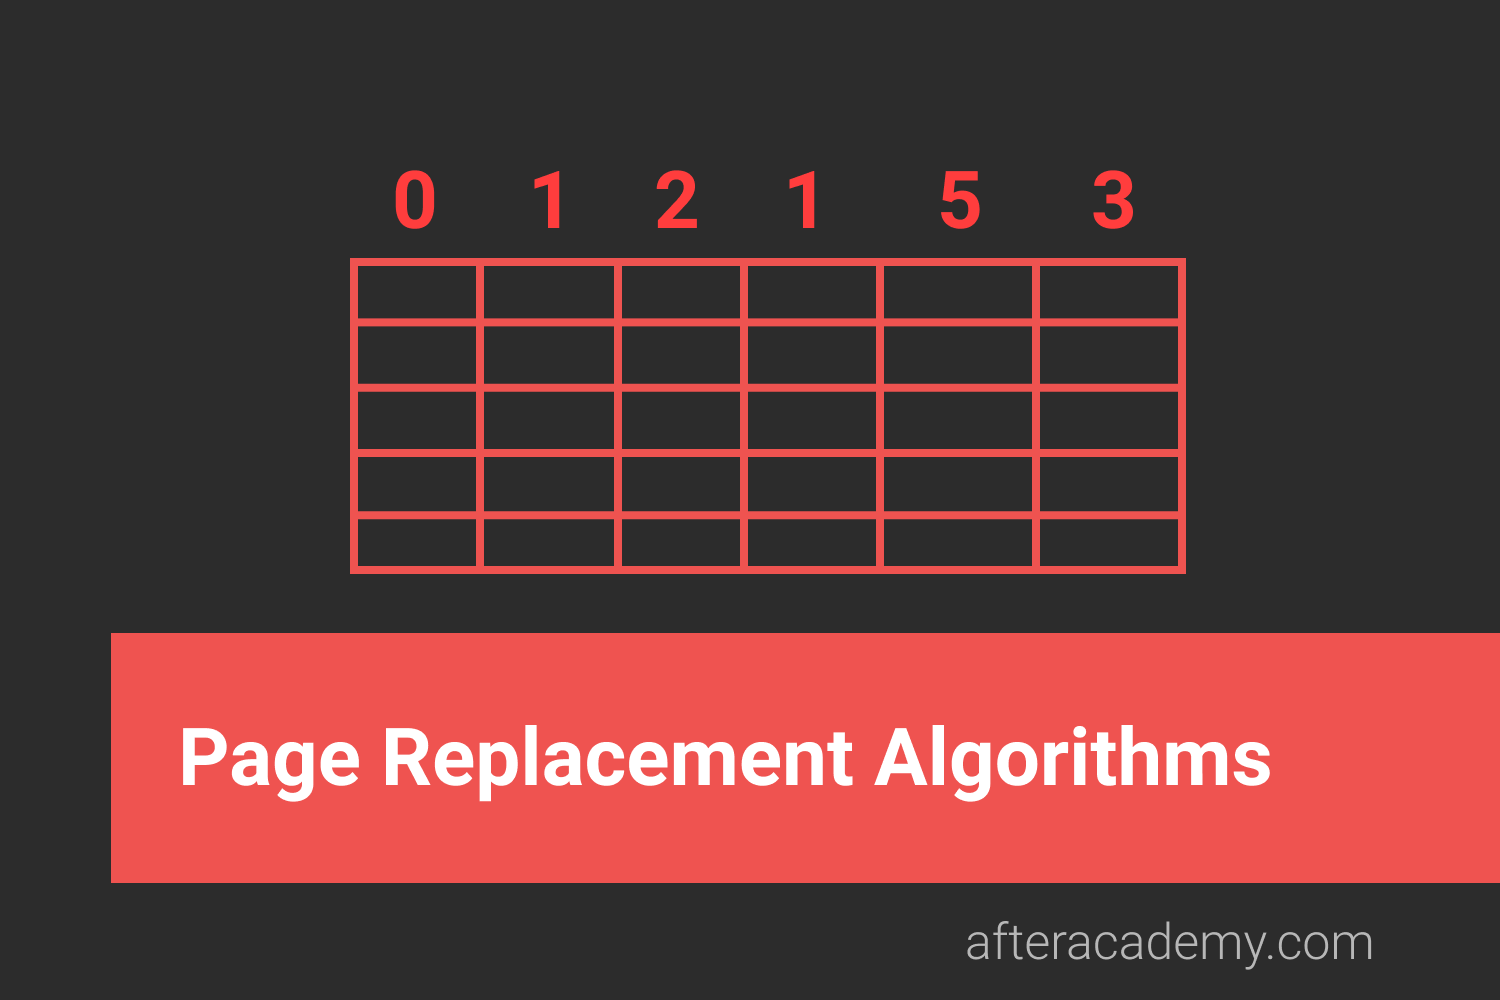 What are the Page Replacement Algorithms?